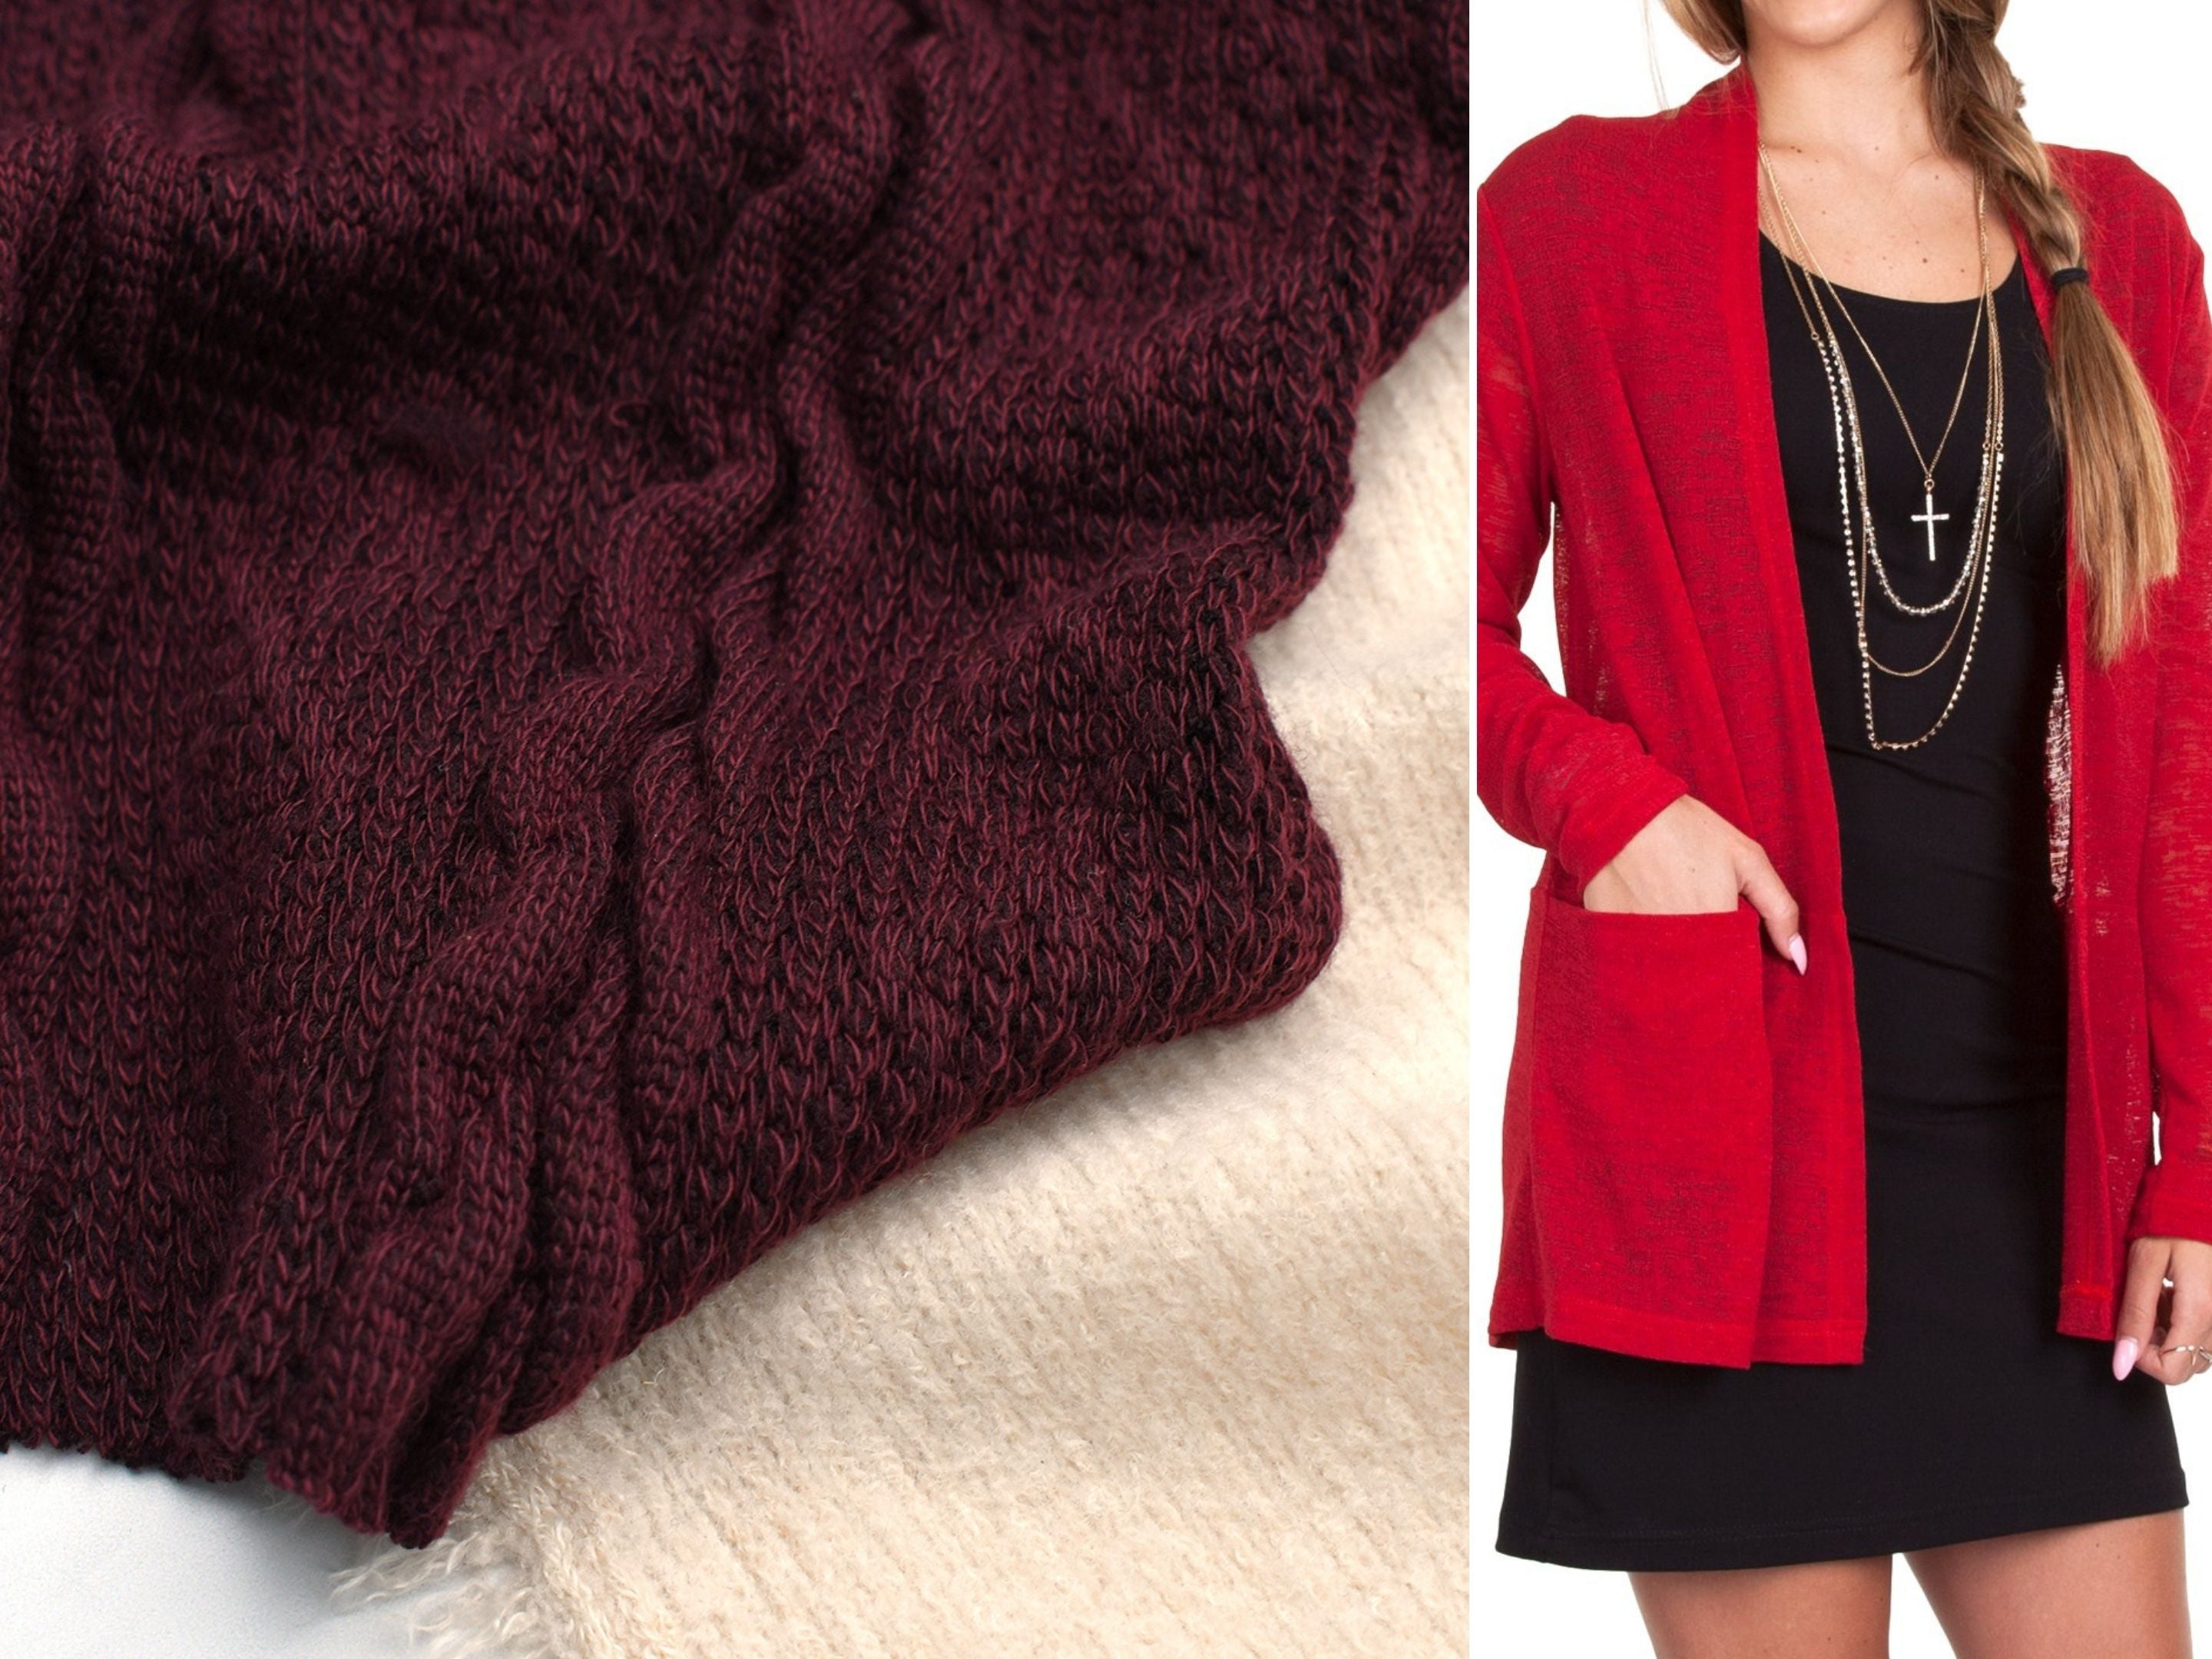 A close up look at two different sweater knit fabrics and a suggested pattern, the Jalie Helene Cardigan